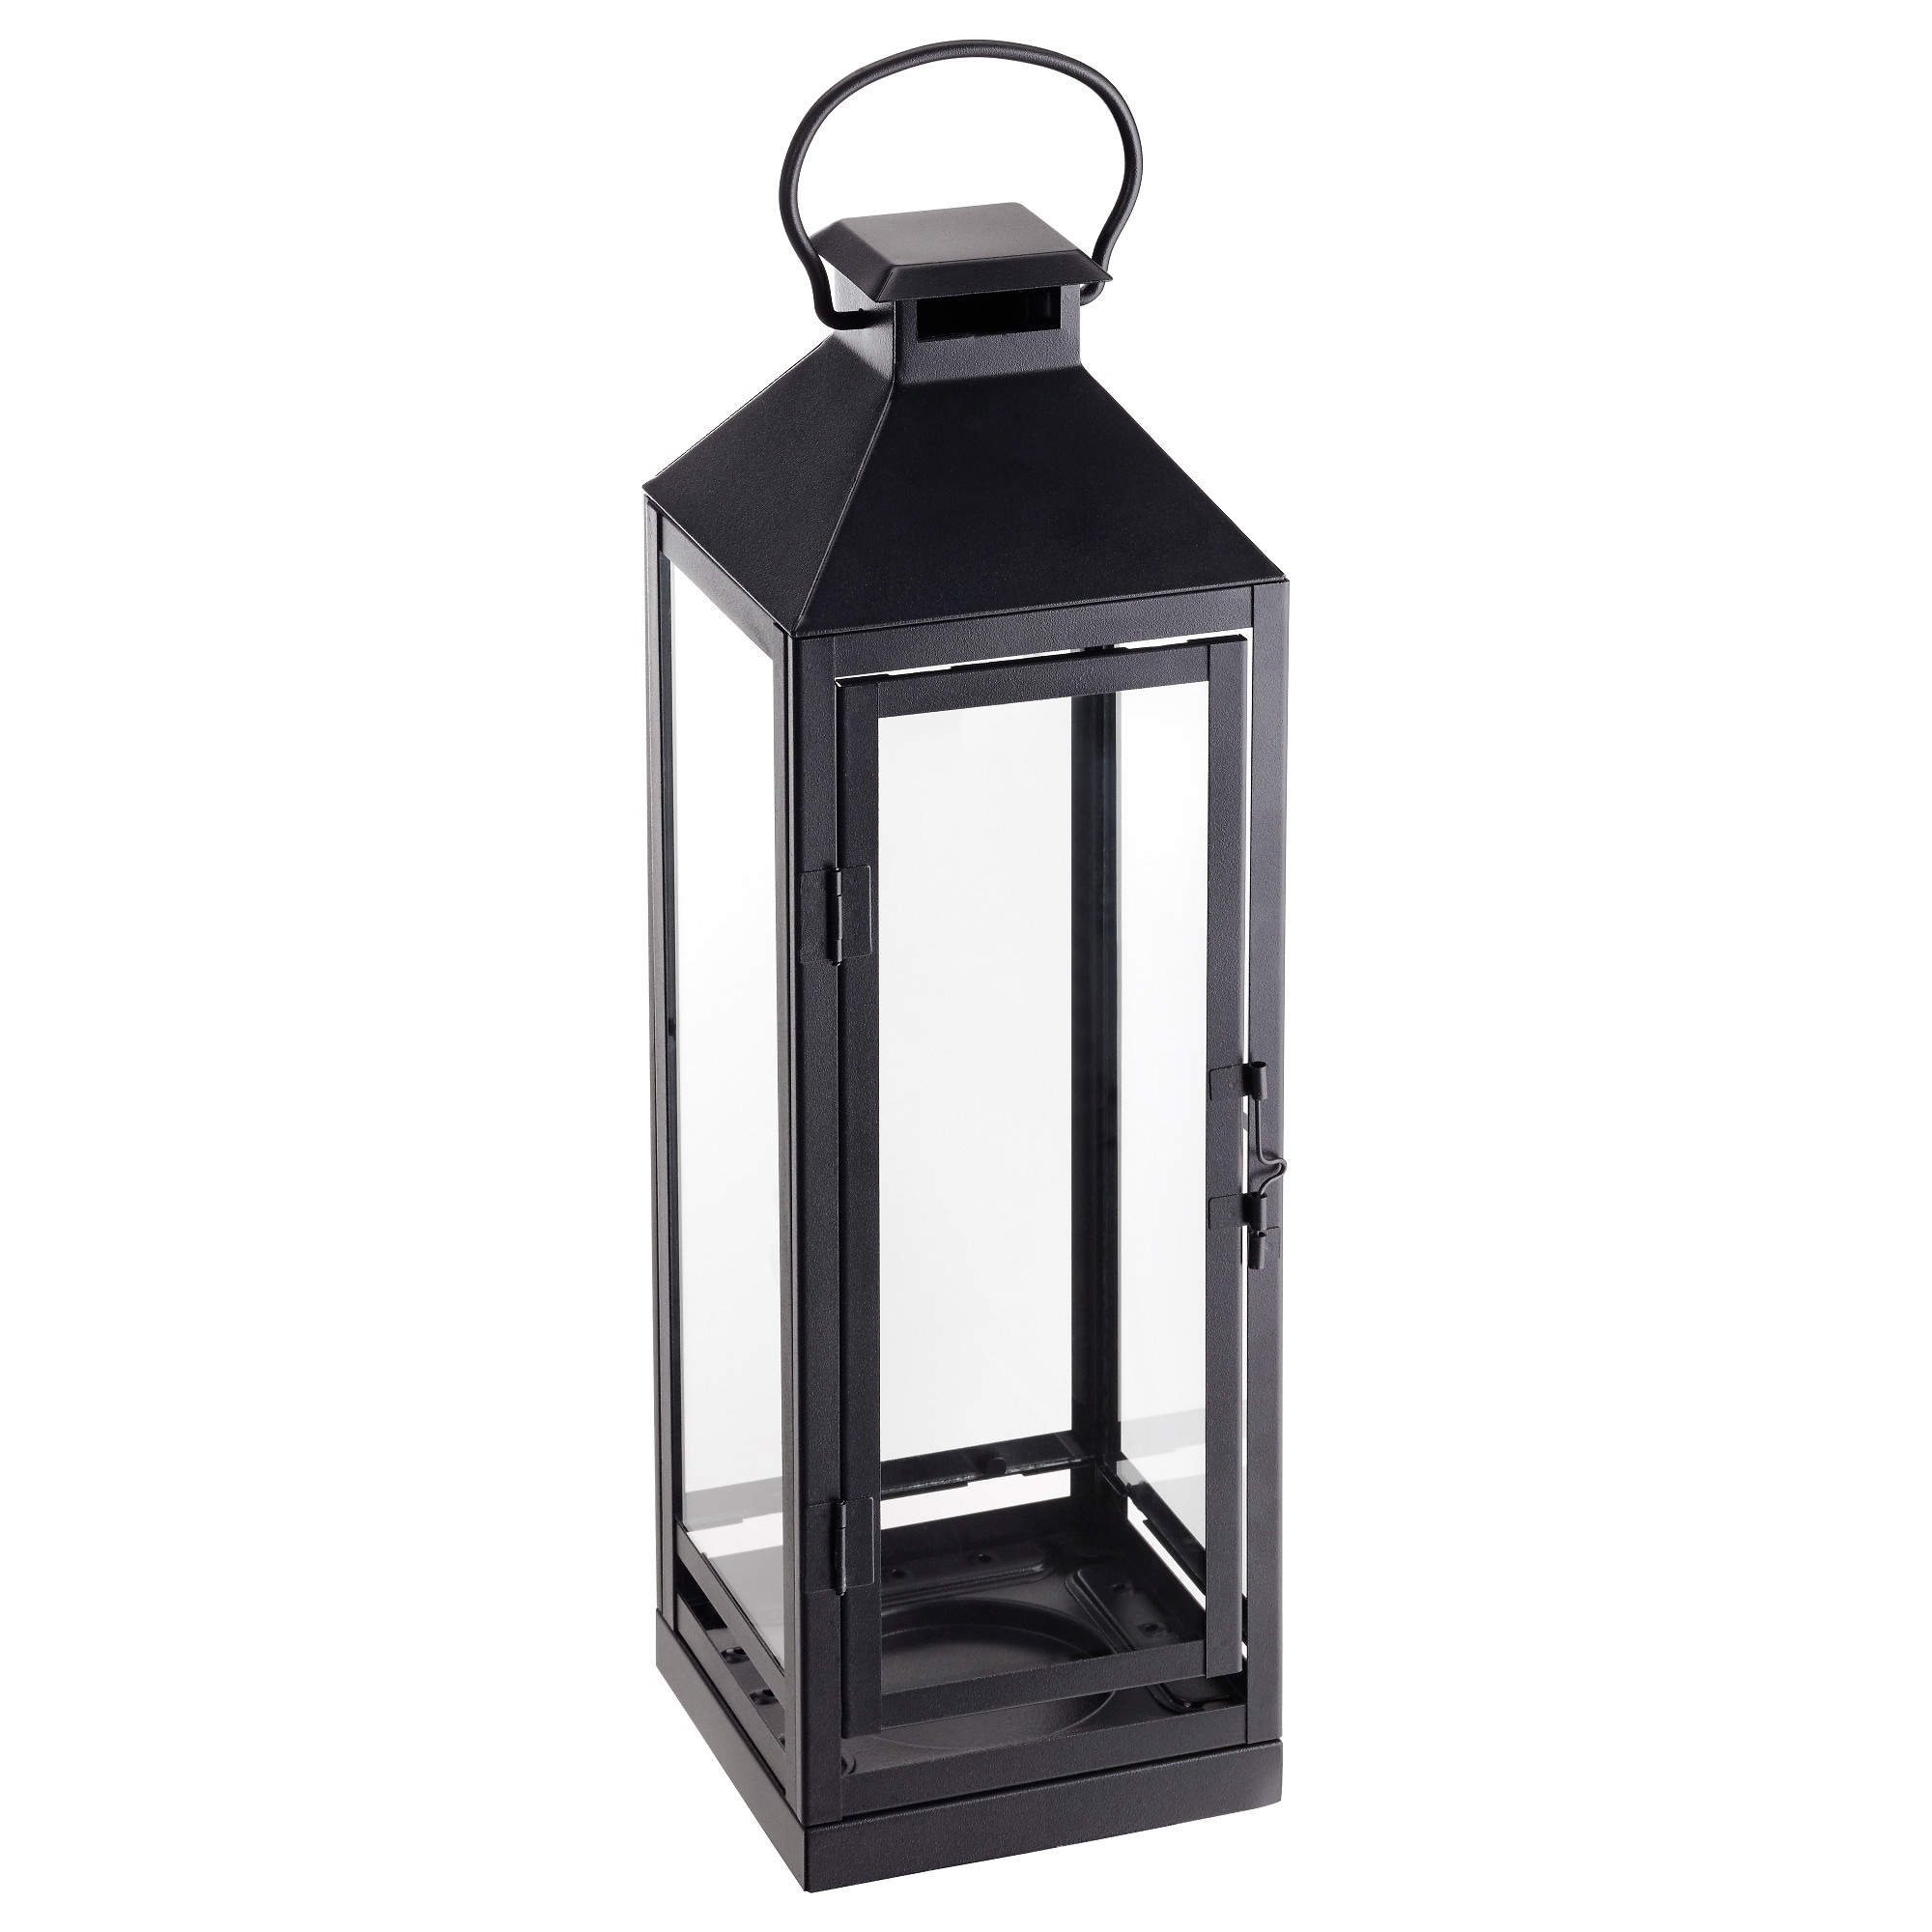 2019 Outdoor Empty Lanterns Pertaining To Lanterns & Candle Lanterns – Ikea (Gallery 3 of 20)